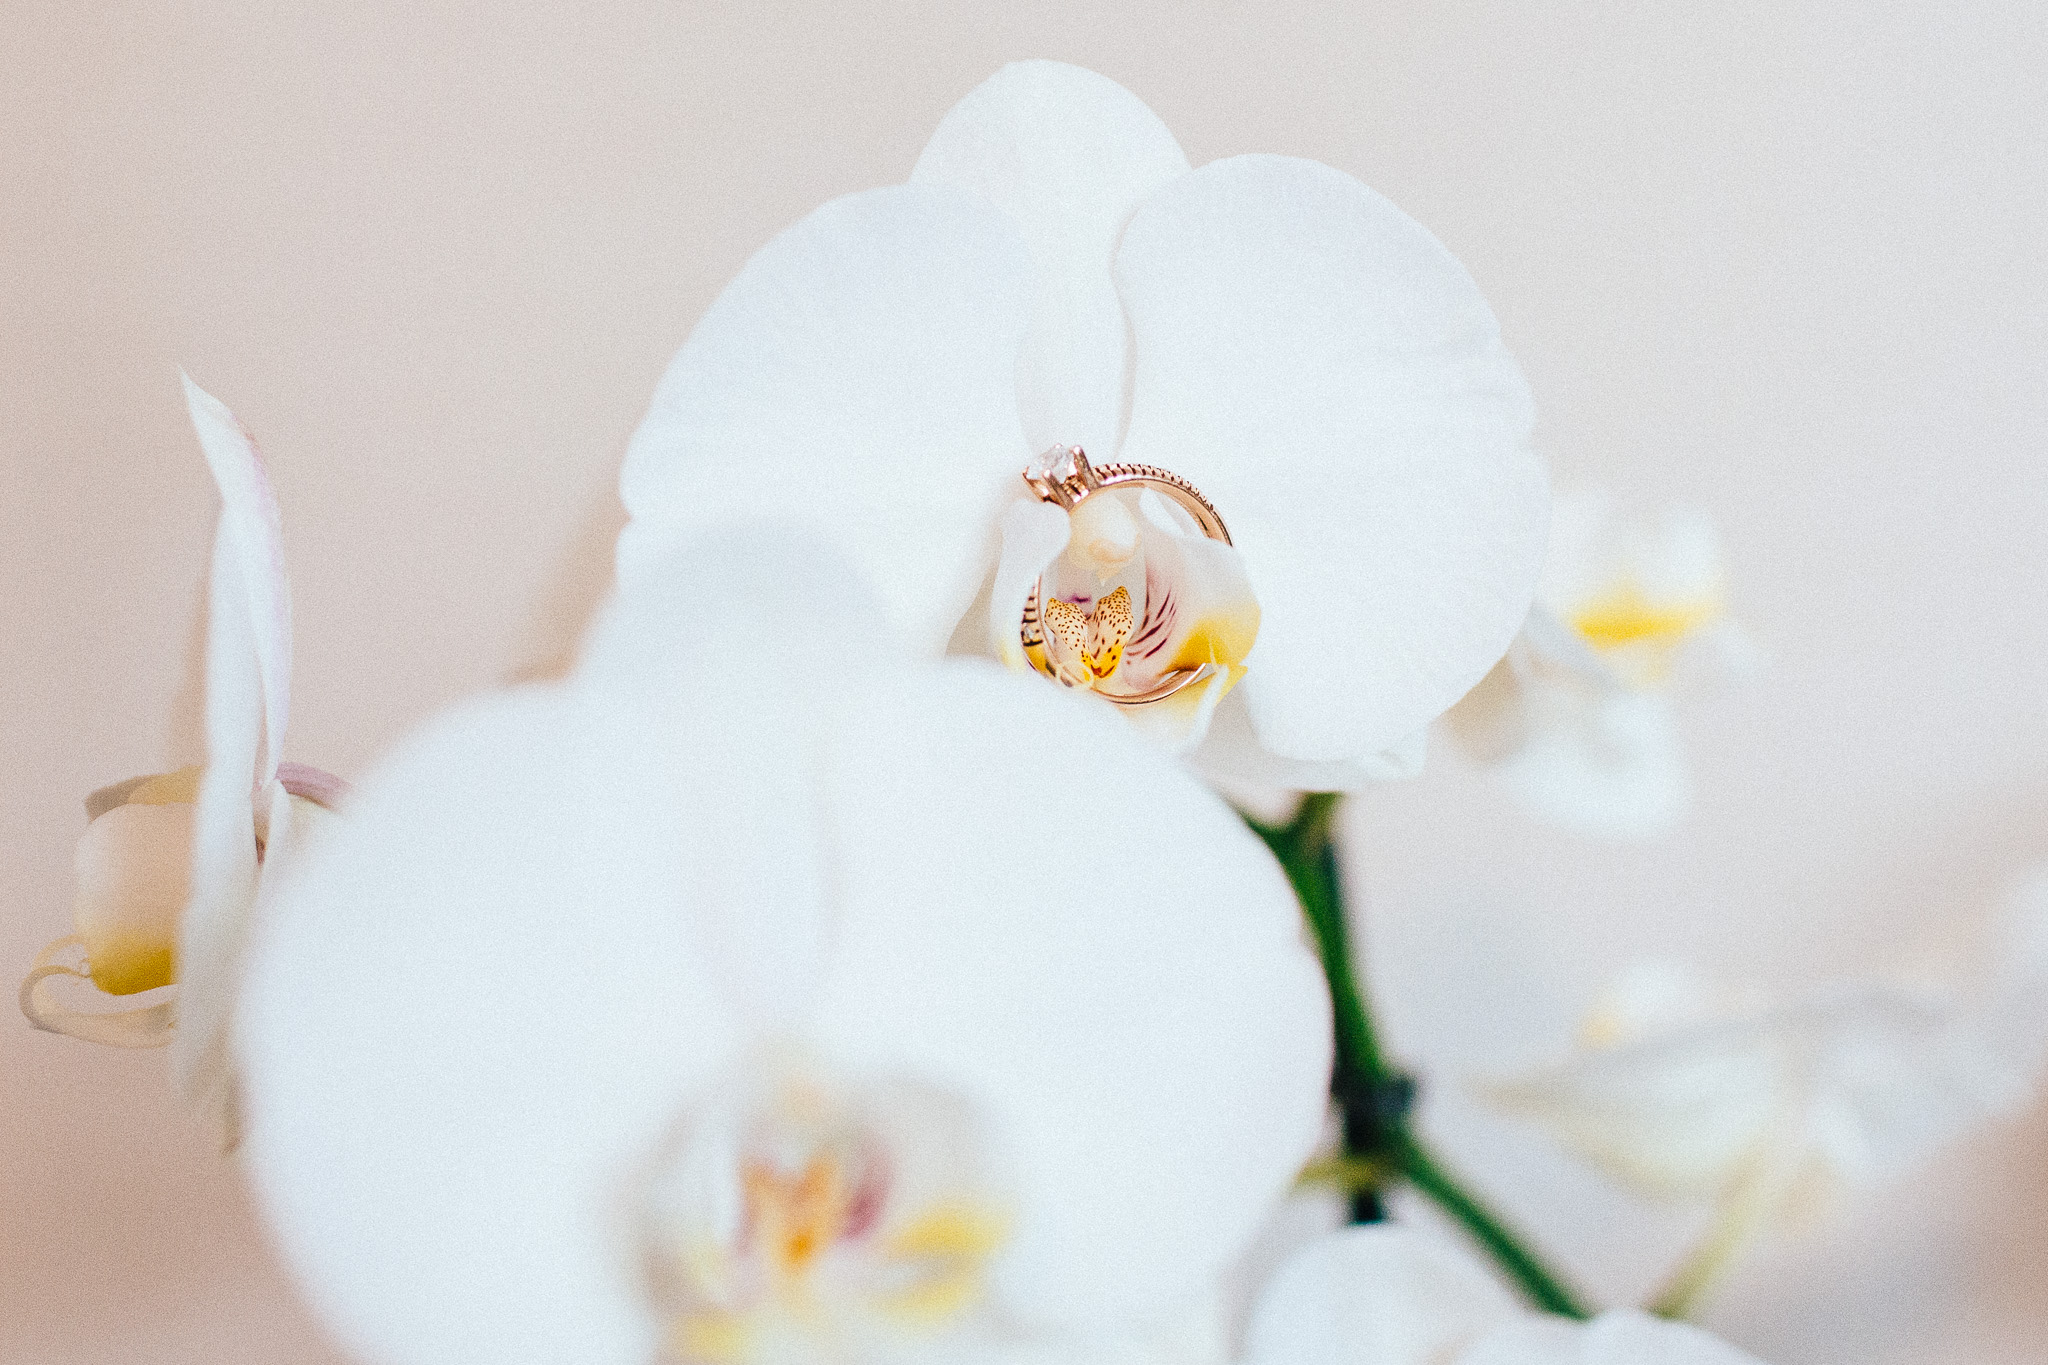 orchid ring detail photograph